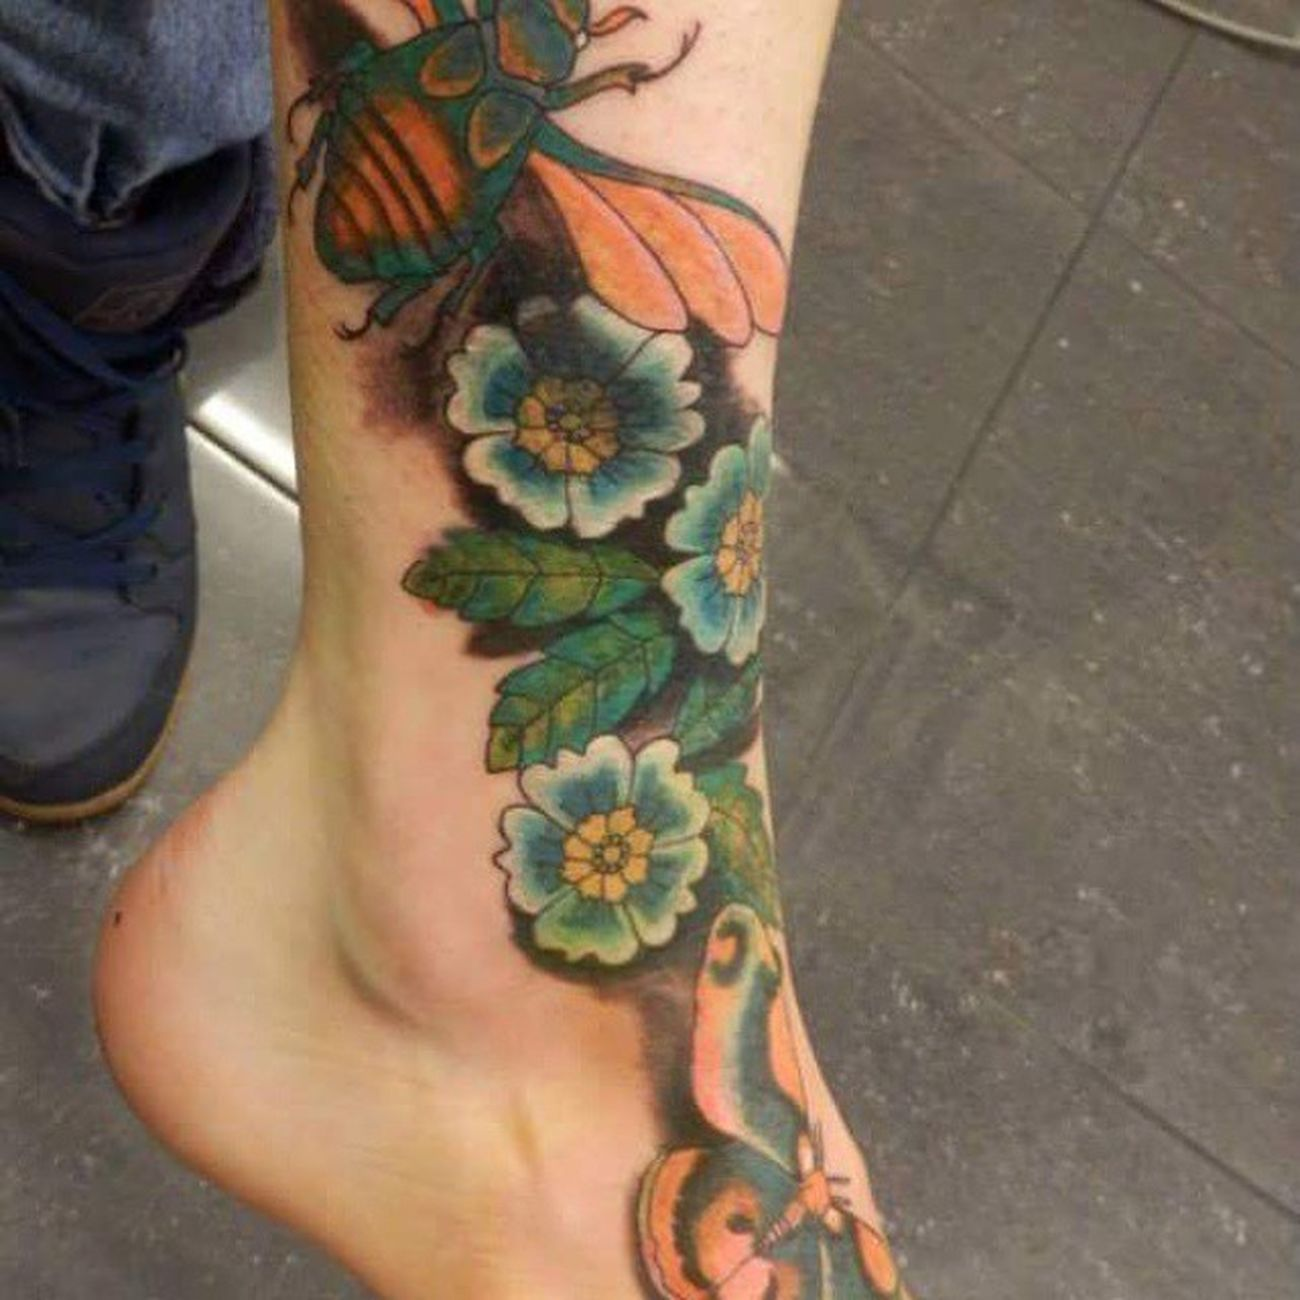 Gorgeously Diffrent foot piece by kerry Tattoo Whiteflame Kerrylavulotattoist Foottattoo Flowers Beetle Colourtattoo Wildlife & Nature Loveit Prettyfeets